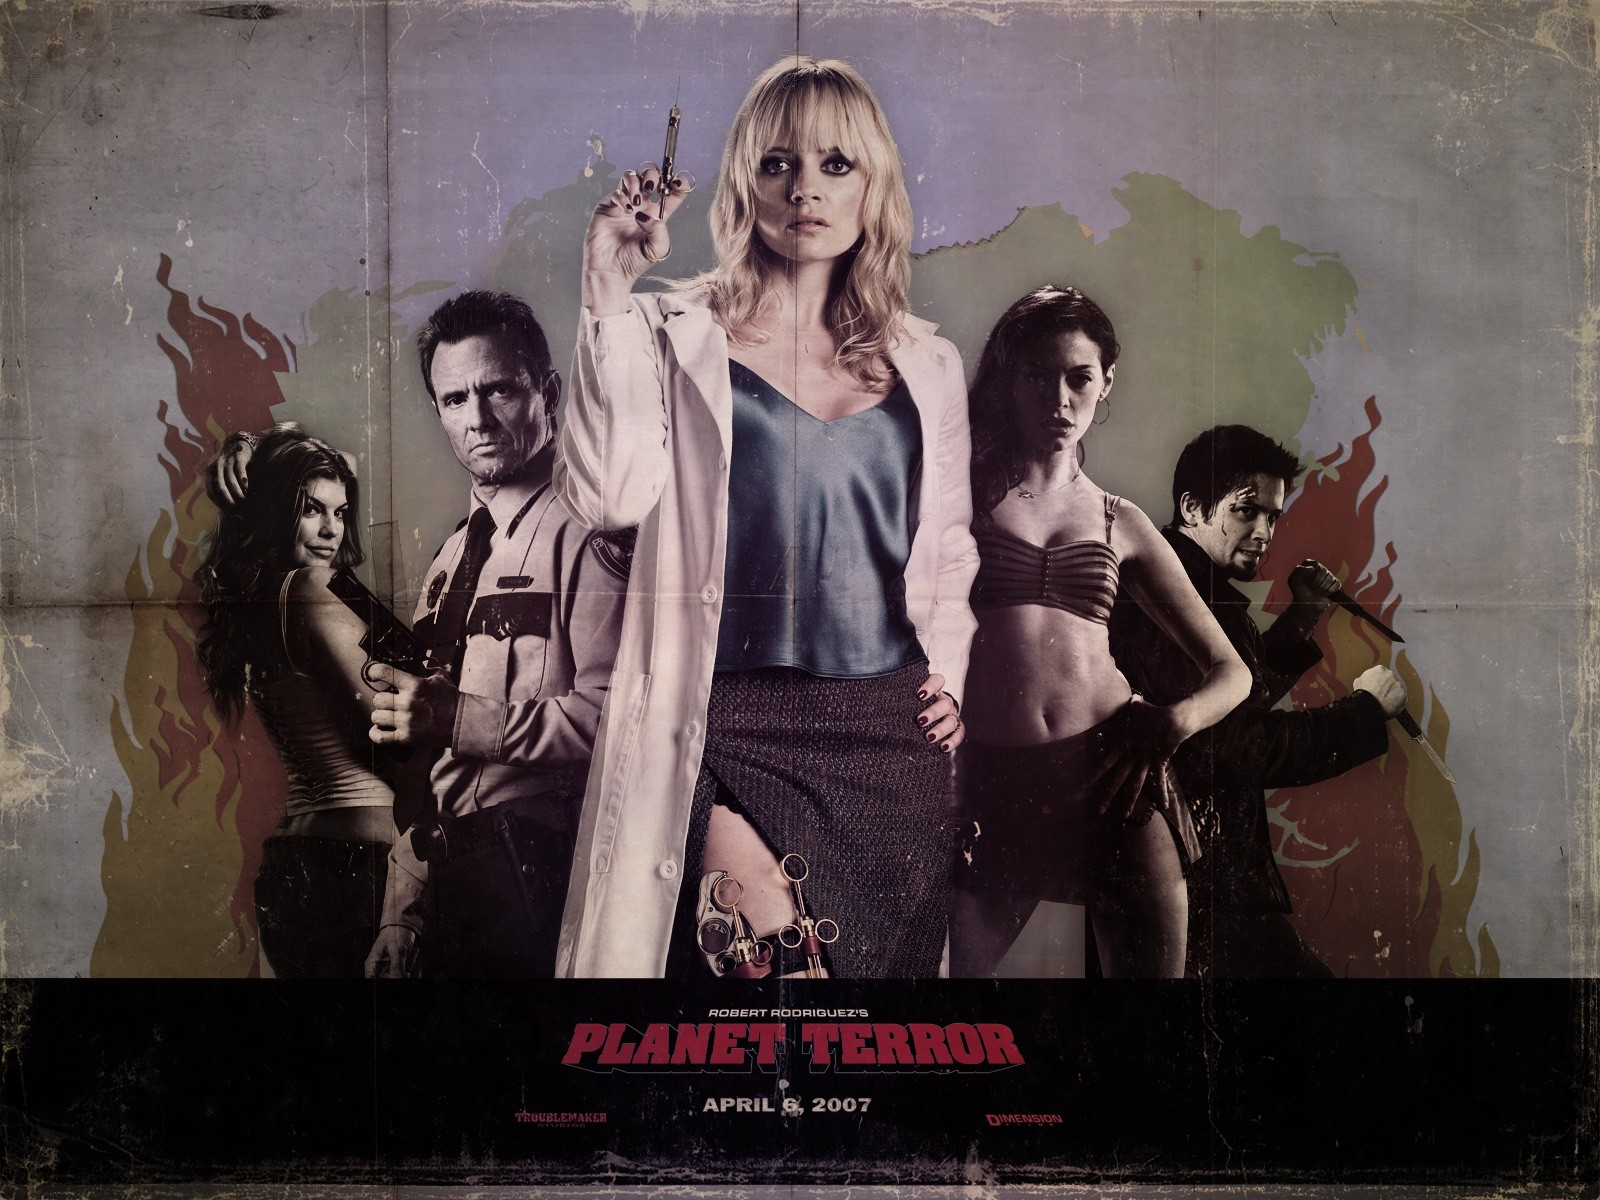 Wallpaper del film Grindhouse con l'infermiera Marley Shelton